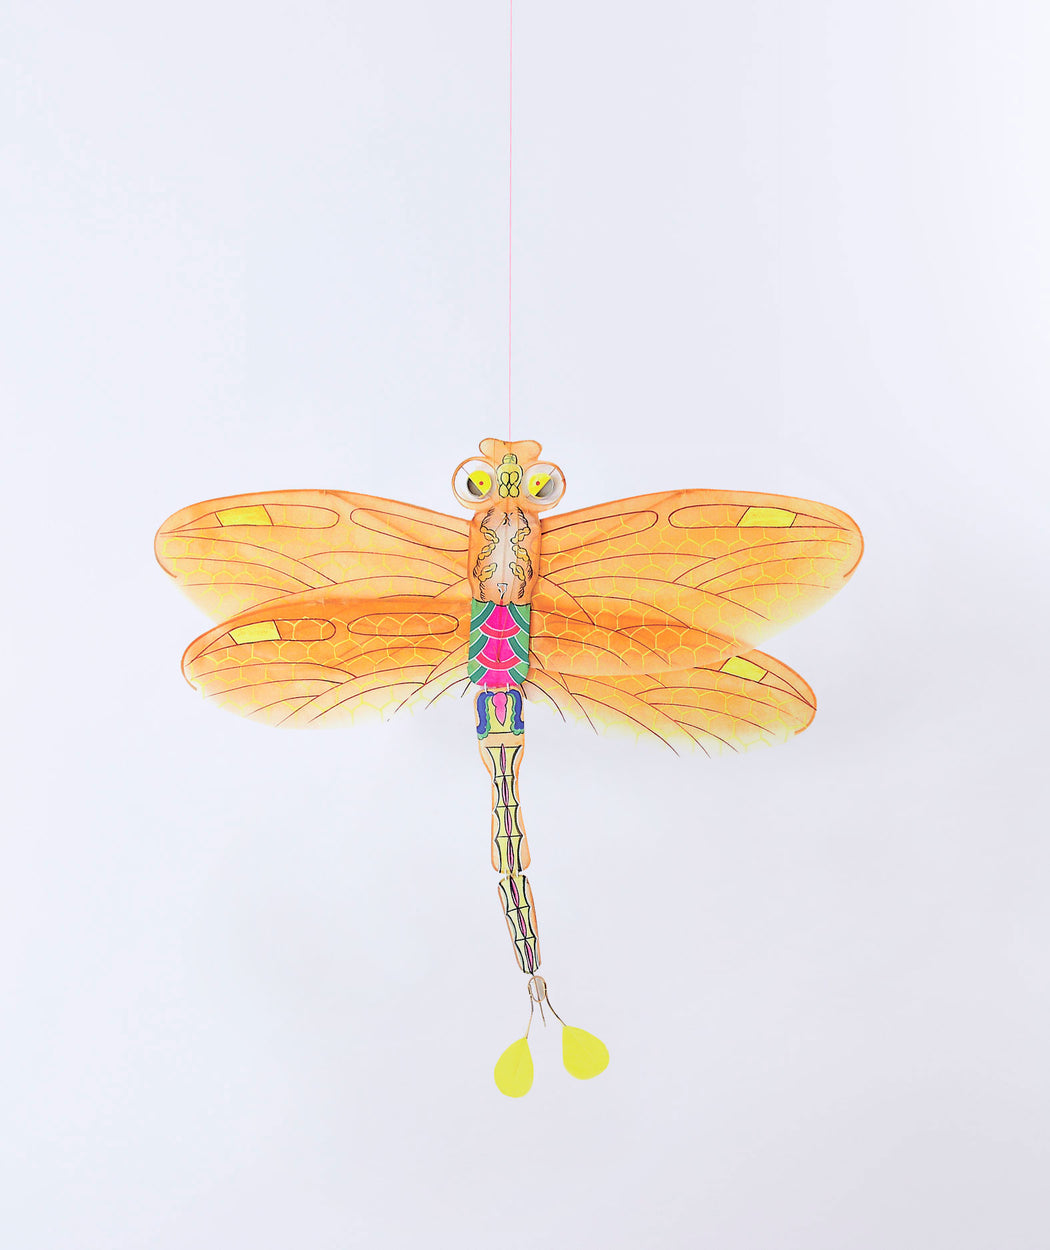 Cerf-volant libellule orange